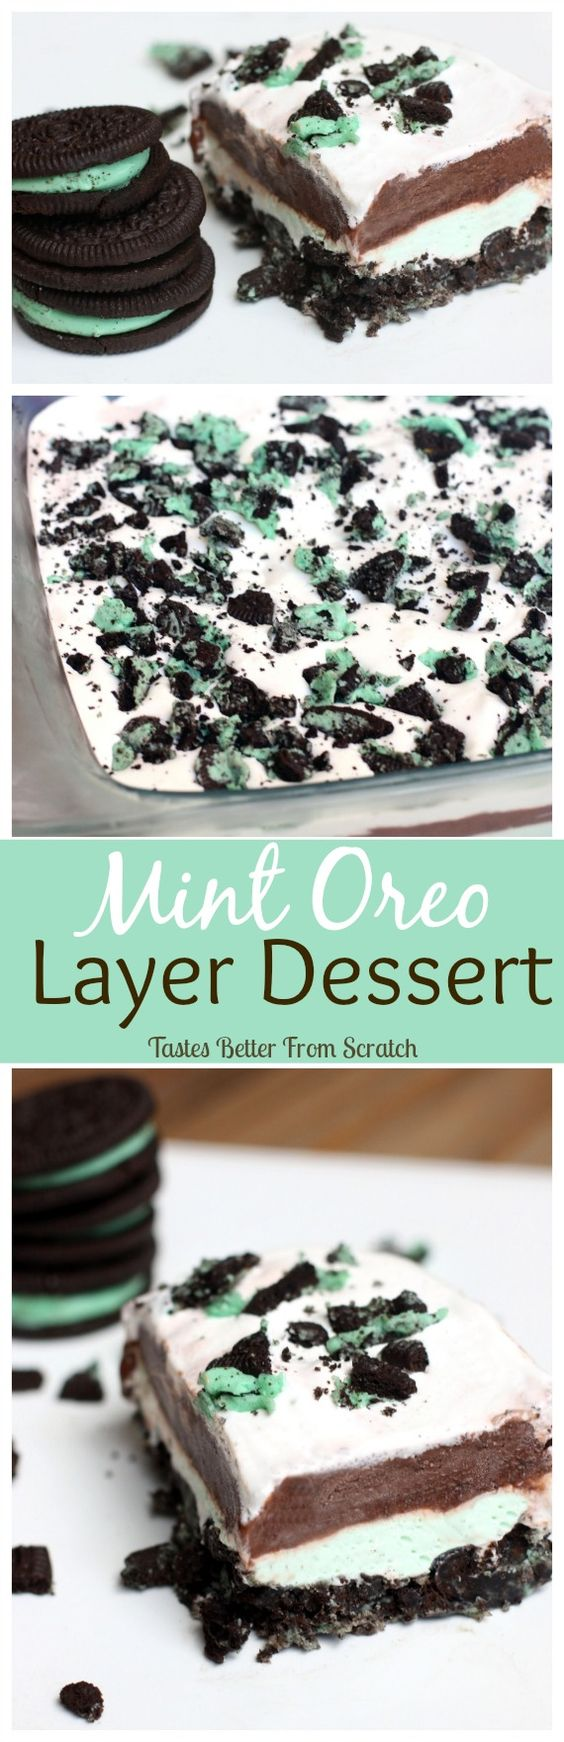 (No-bake) Mint Oreo Layer Dessert Recipe ~ An easy no-bake dessert with layers of mint Oreos, cream cheese, chocolate pudding and Cool Whip!